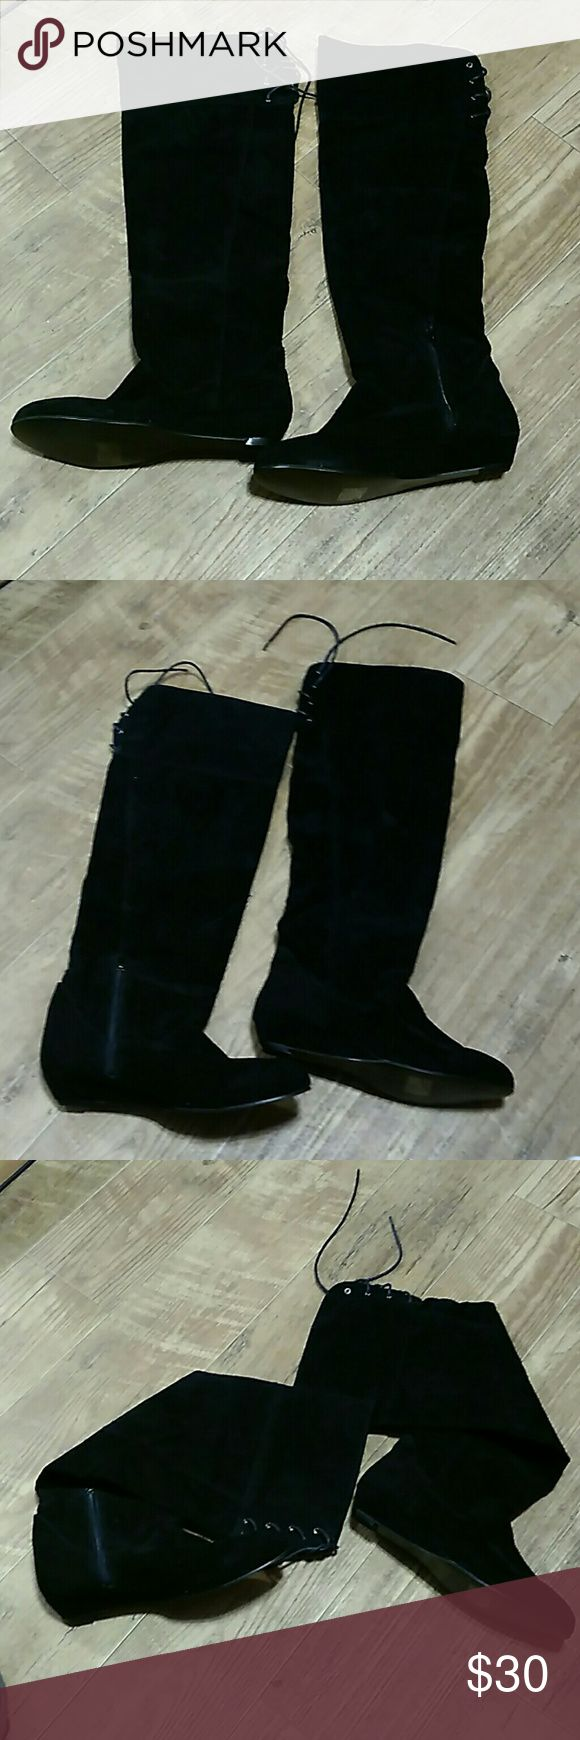 Women Black knee high Boots NEW Other